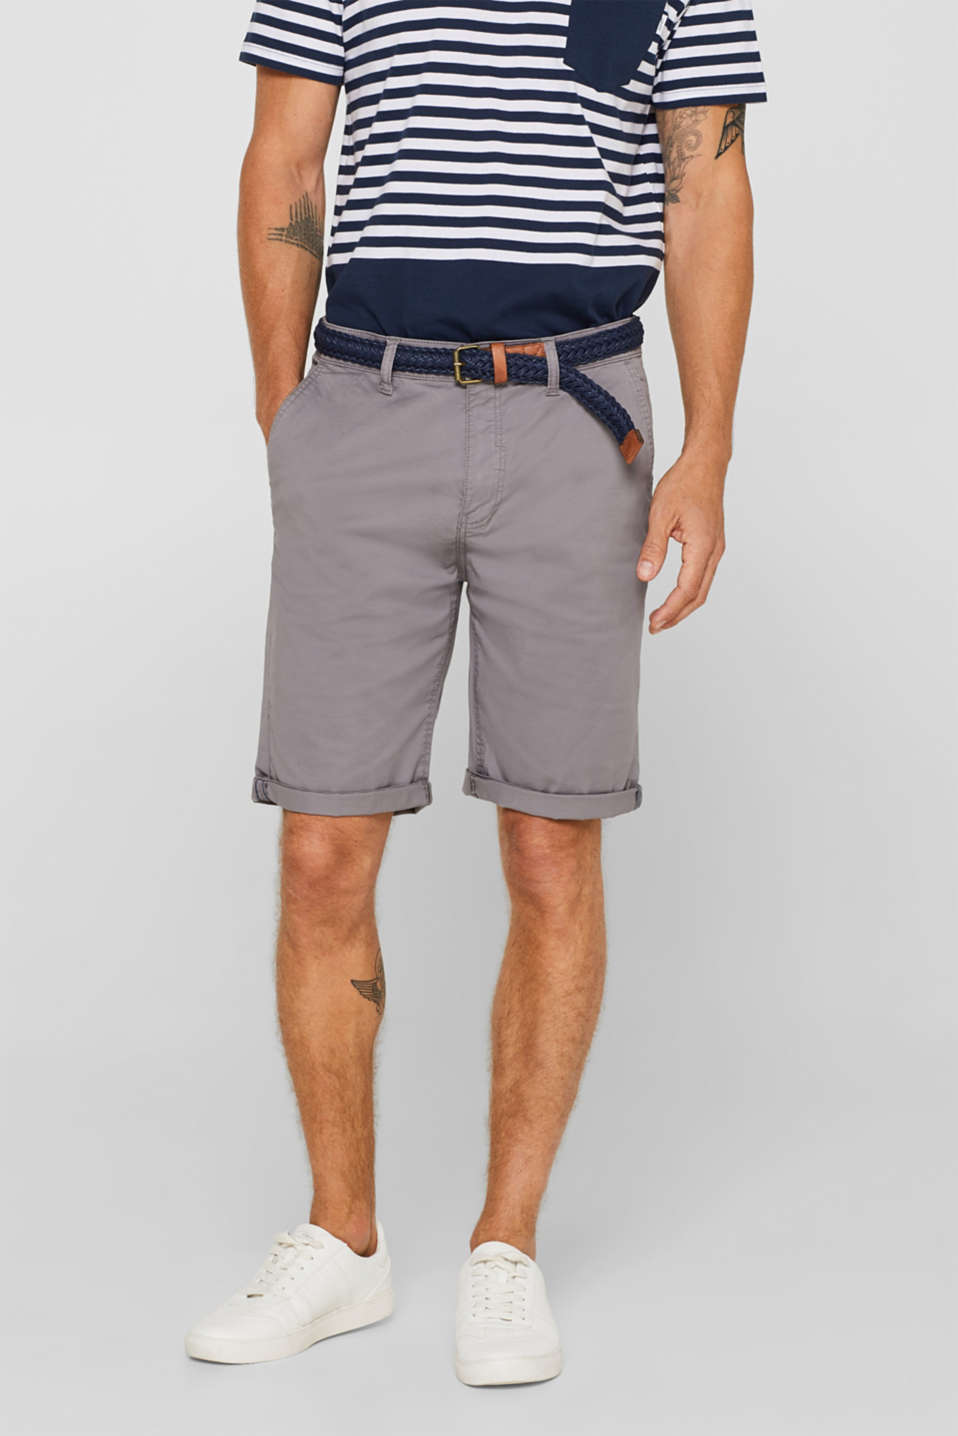 Esprit - Chino shorts with a braided belt